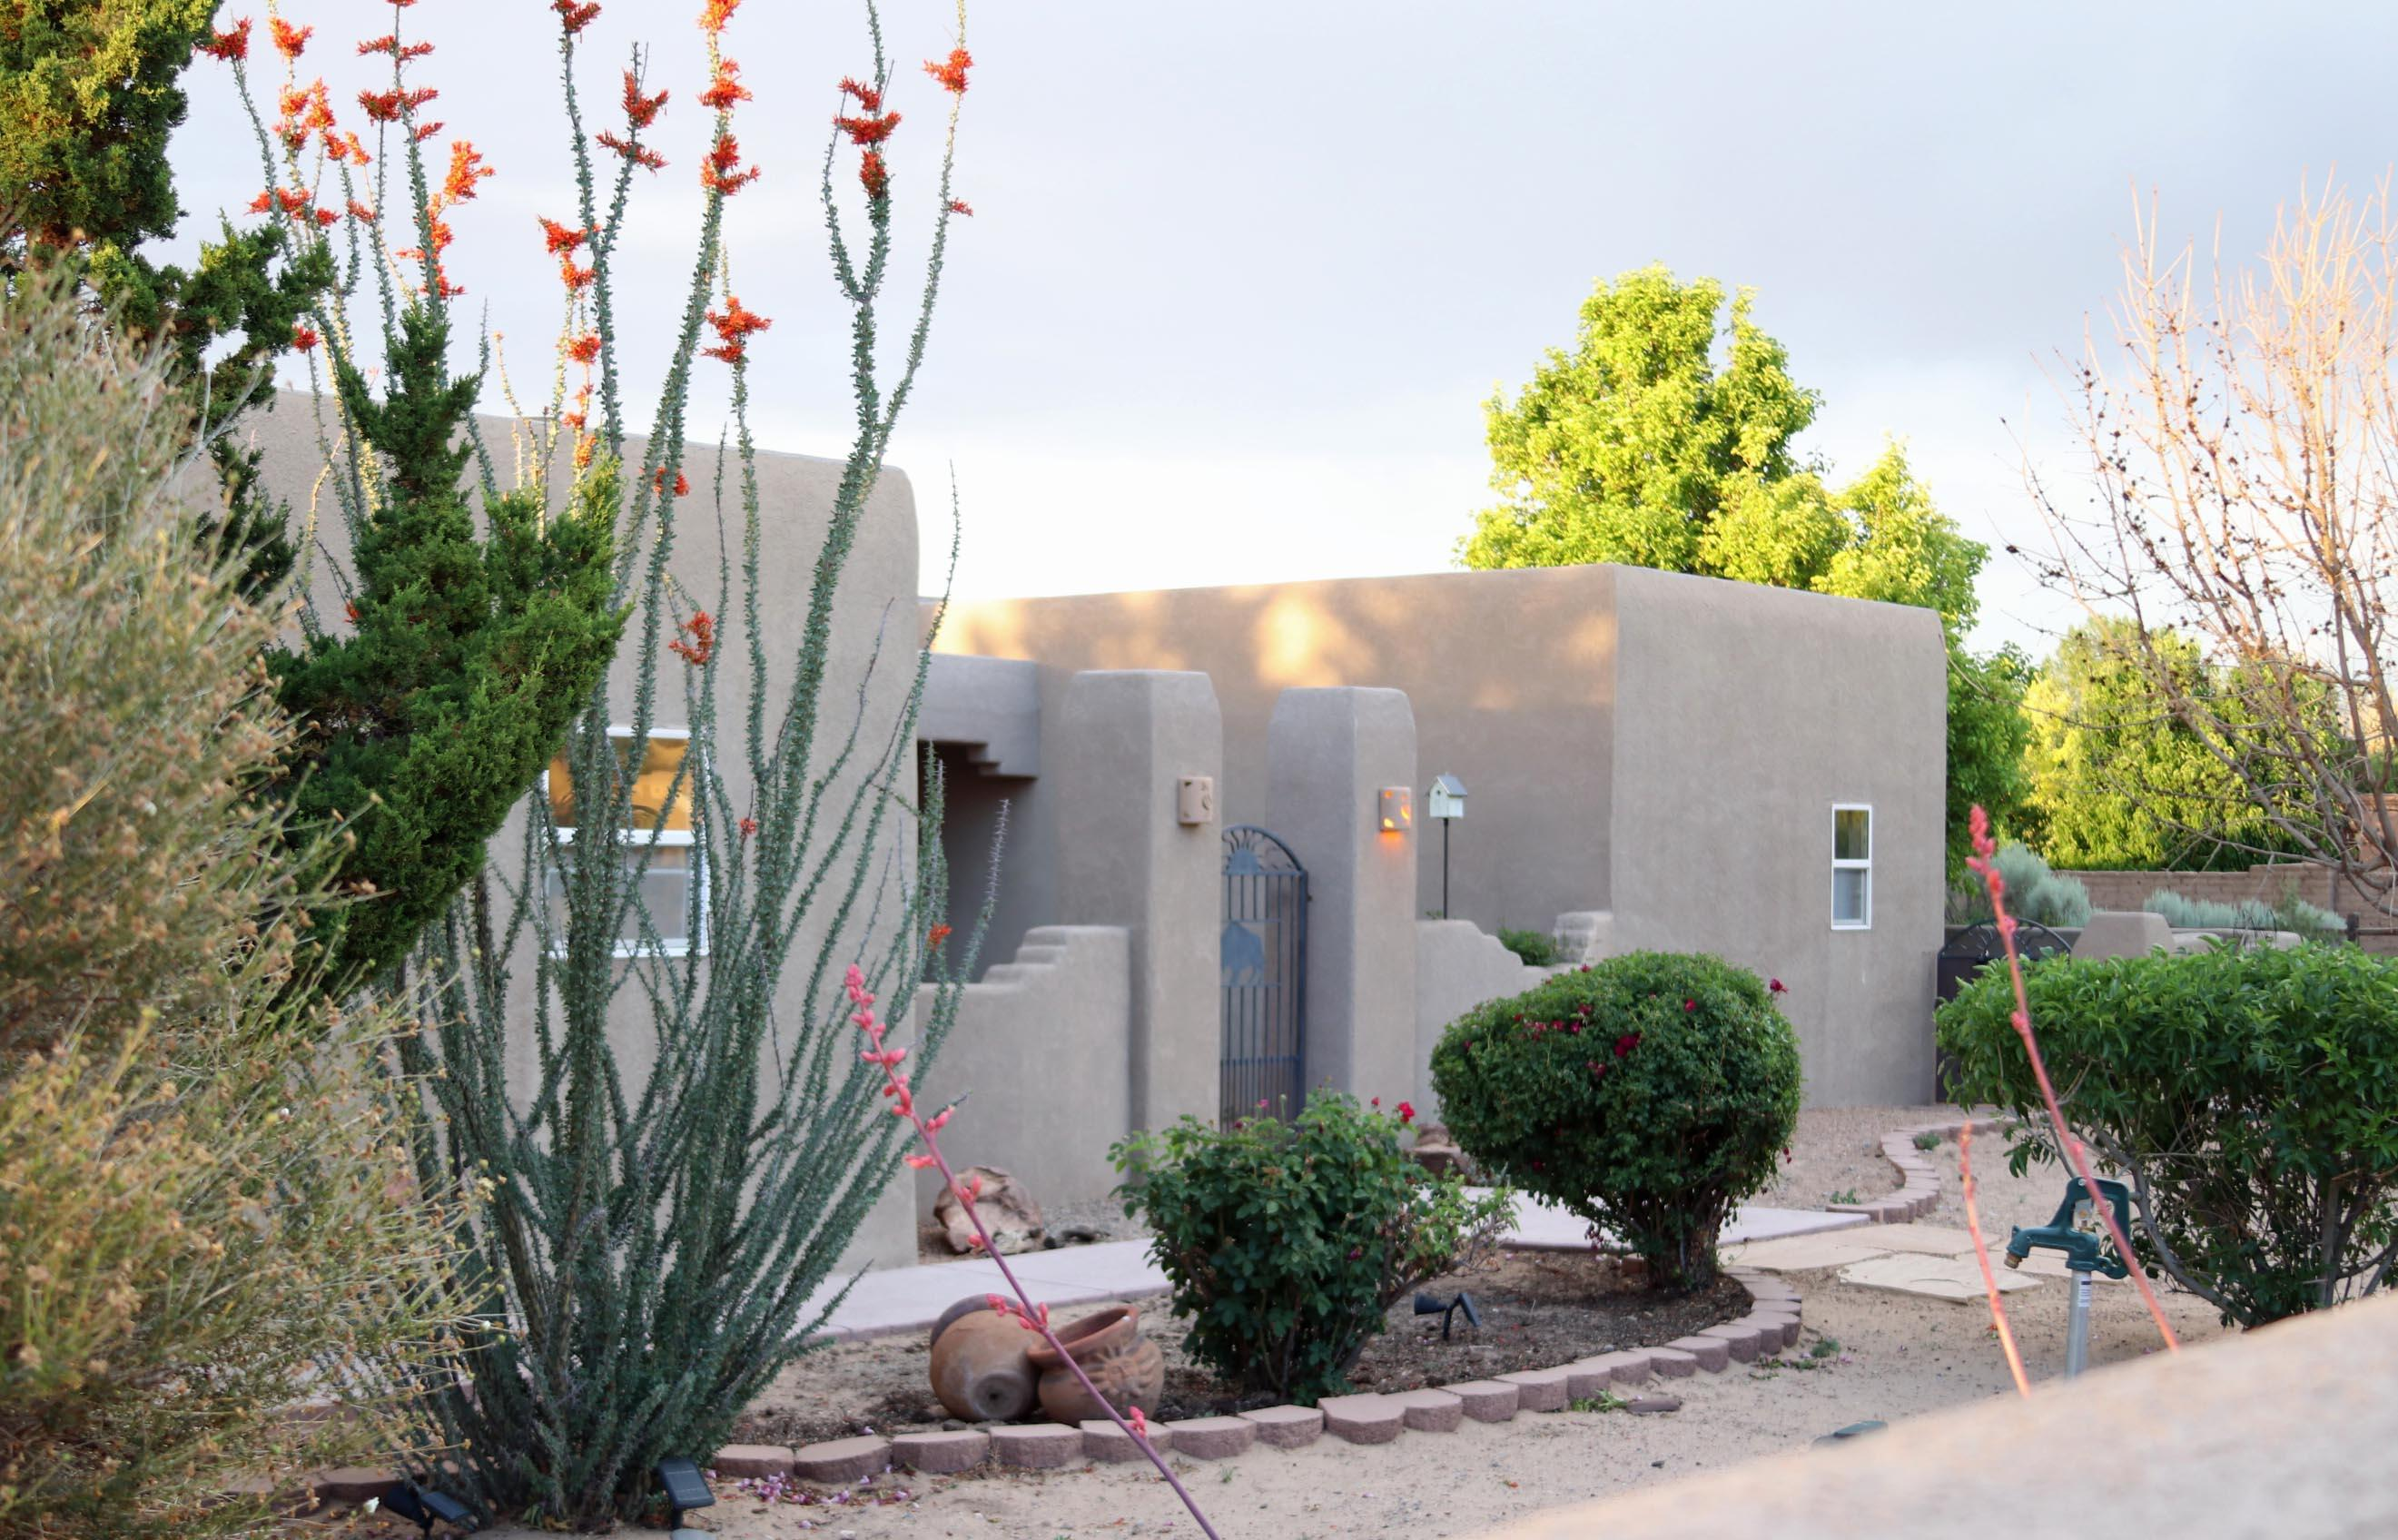 Stunning Corrales Beauty welcomes you w/ a courtyard entrance! Gracious living room w/ vaulted ceilings, vigas, tongue & groove ceilings & corbels. You'll love the cozy Kiva fireplace for those cold winter nights. Chef's delight kitchen w/ granite counter tops, plenty of cupboard space & breakfast bar. Stainless appliances, include a drop-in gas cooktop & Bosch dishwasher. Wonderful multi-gen floor plan. Master is separate from other bedrooms & there's  a possible In-law suite too! Amazing new NE covered patio, complete w/ a kiva fireplace w/ fantastic mountain & city light views! Art studio/office/workshop & sunroom not included in sq. ft.  No water bill (well) No electric bill  (solar.) Rain barrels &new irrigation system. Plenty of parking. It's beautiful! SEE LOSO regarding ALARM.